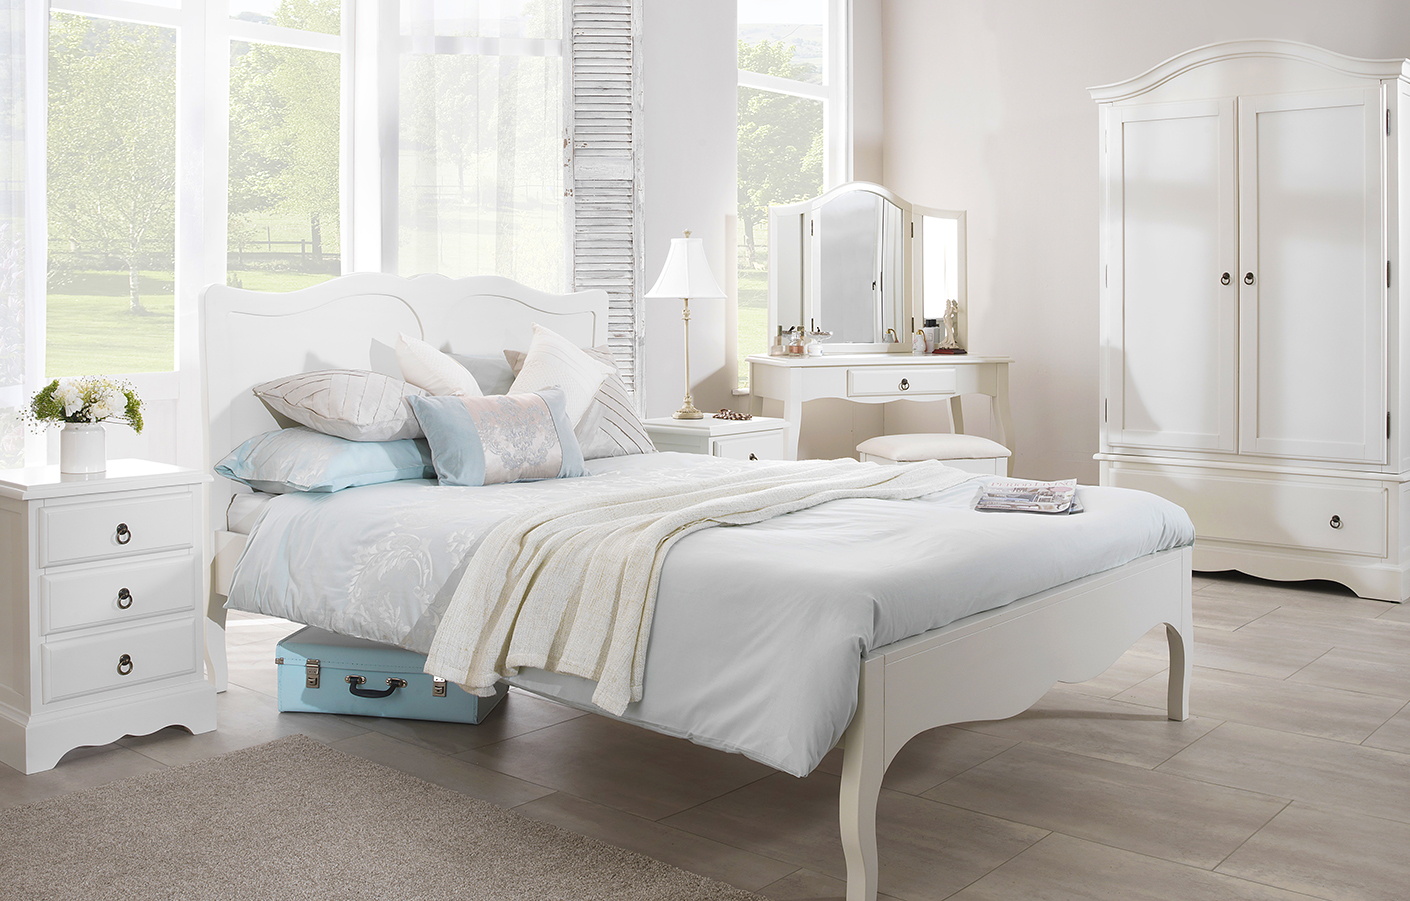 white bedroom furniture amazing bedroom with provencal white rattan bed RMQXTAE